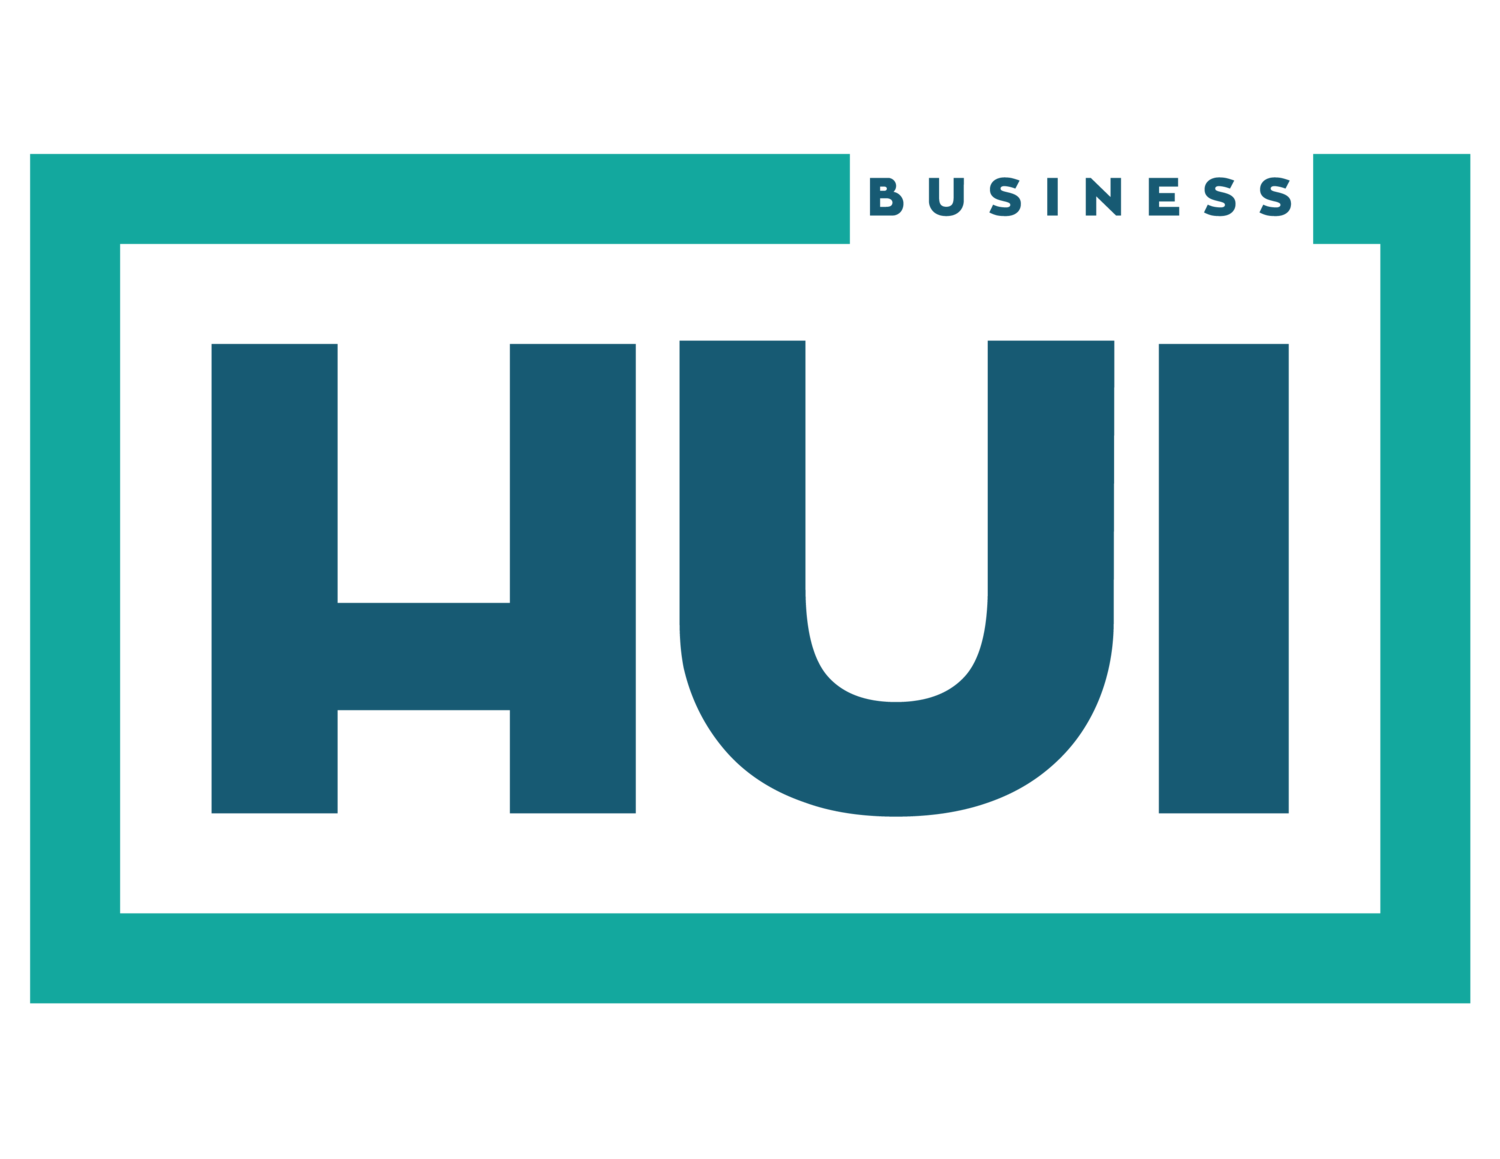 Business Hui Network